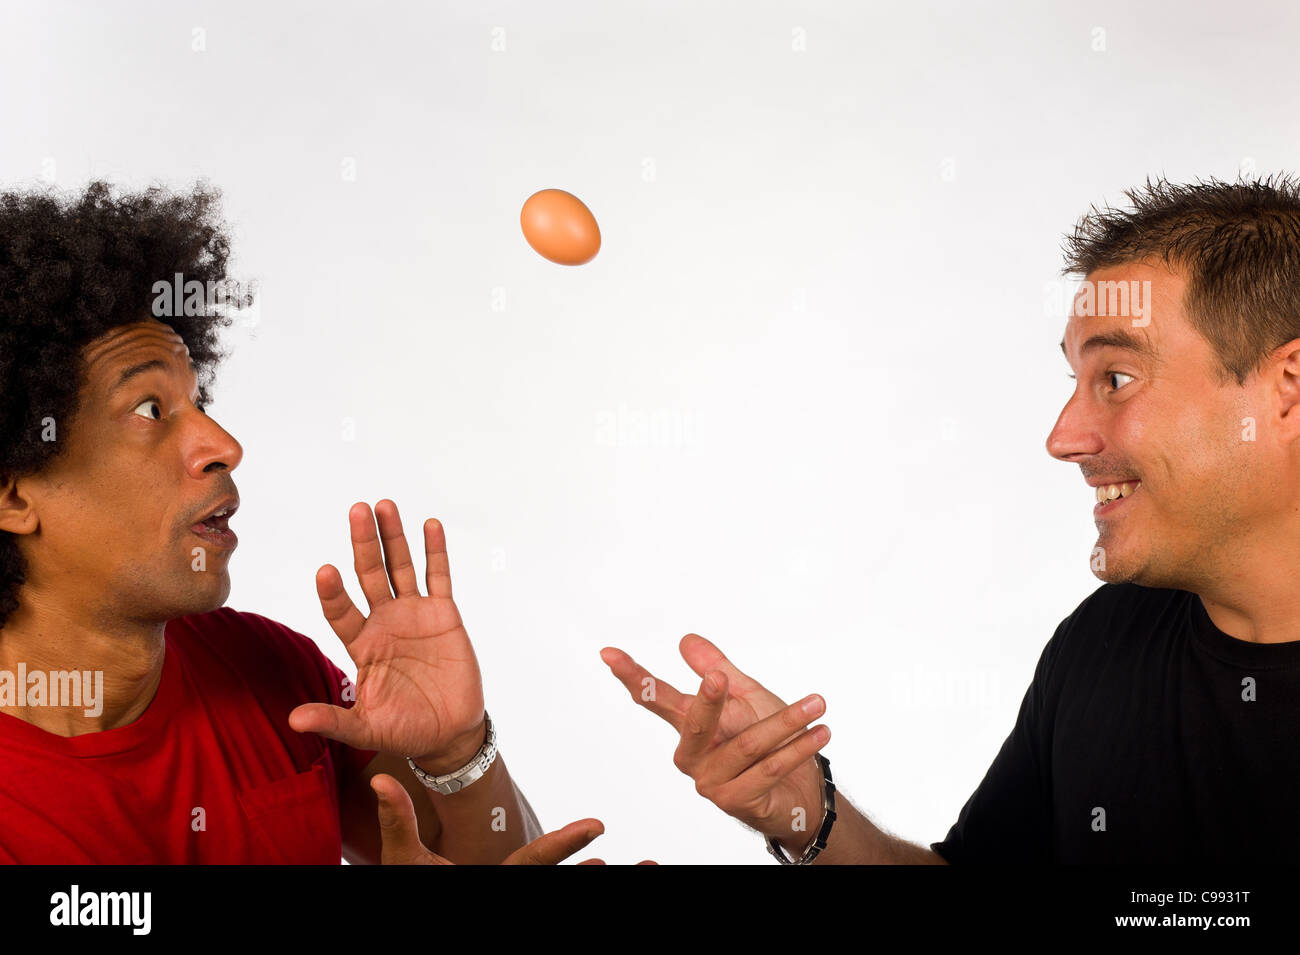 Two guys fooling around with an uncooked egg - Stock Image